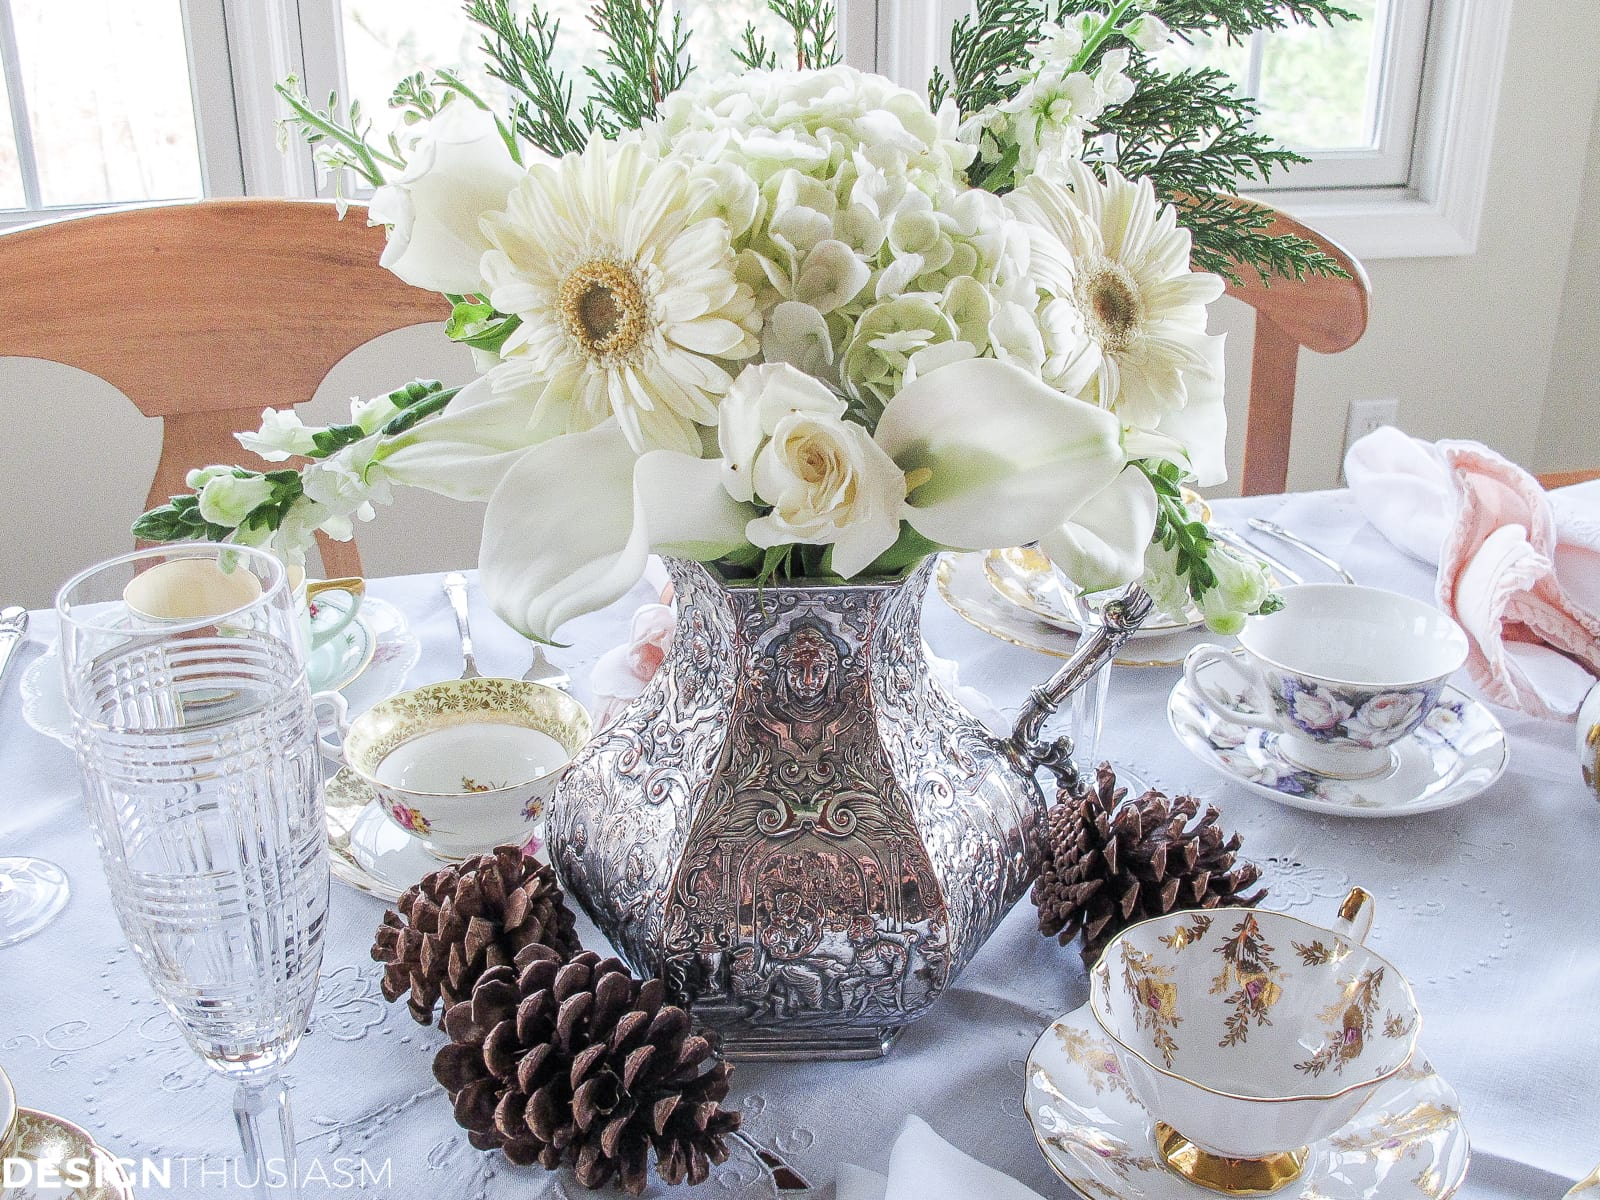 Winter Bouquet for an Afternoon Tea Party-Designthusiasm.com